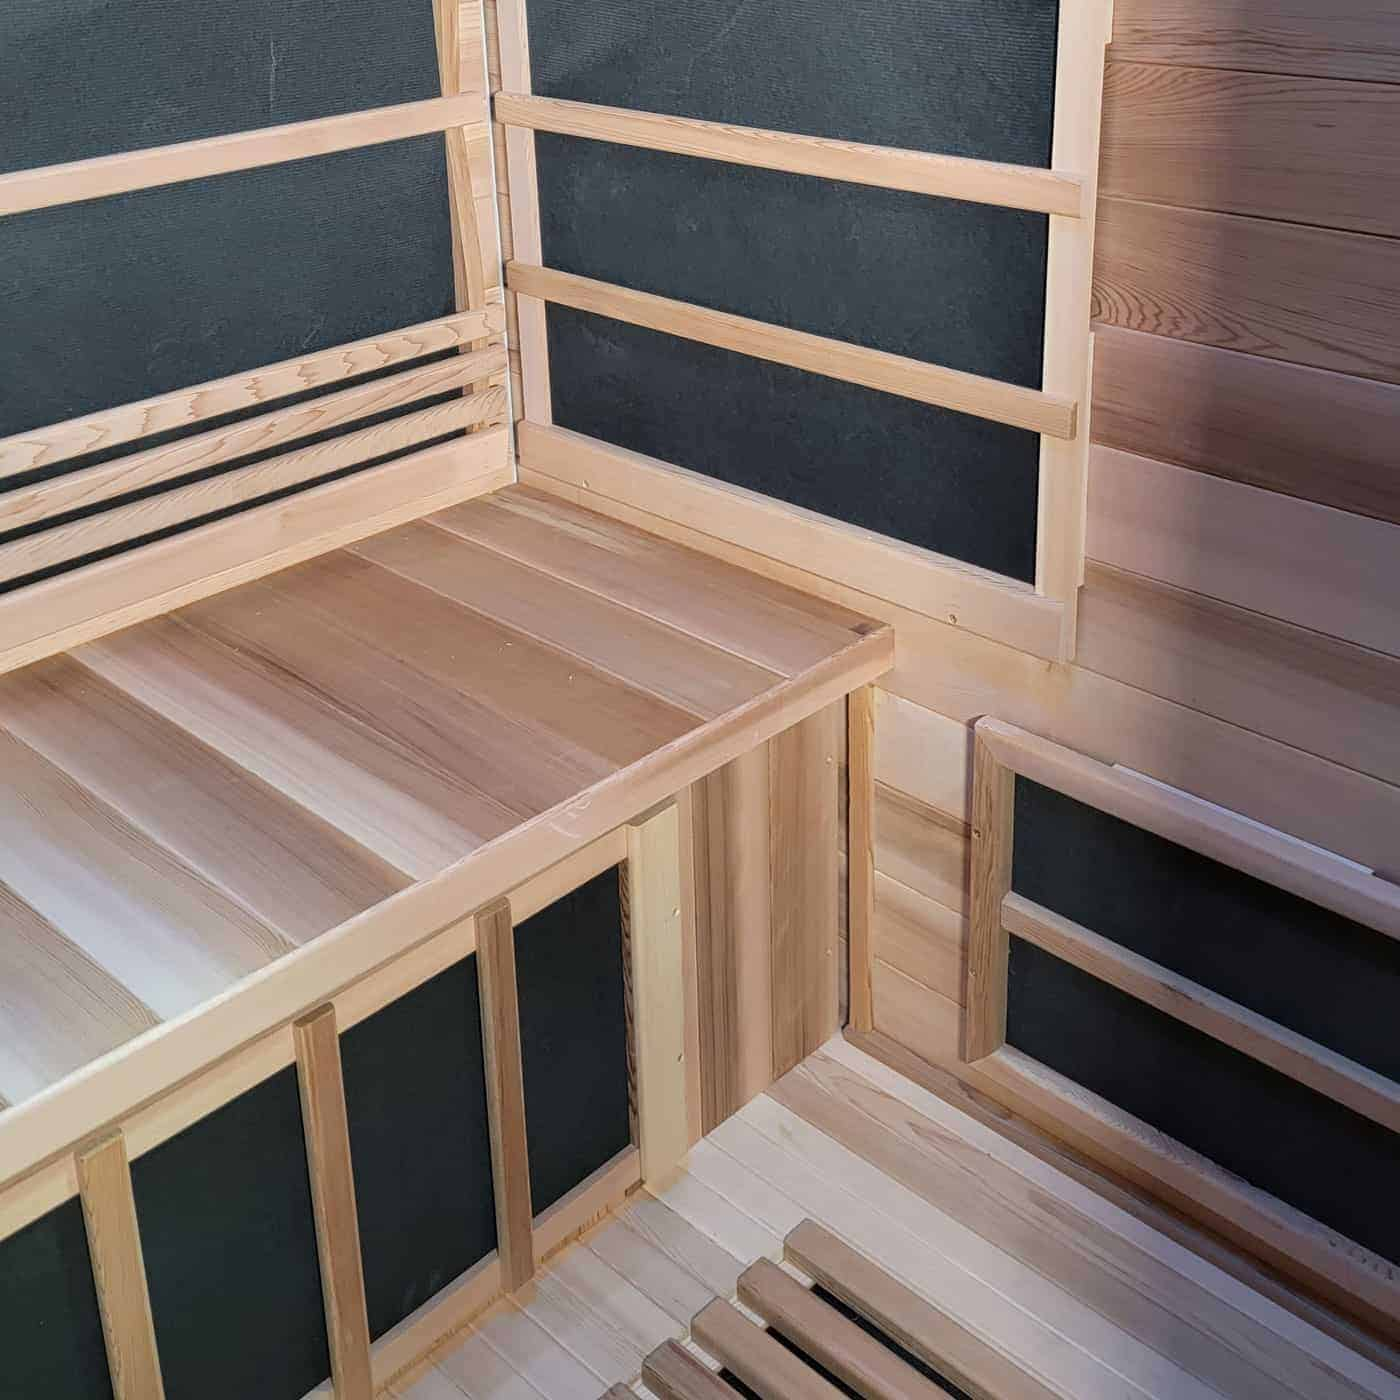 Outdoor Infrared Sauna Interior View with Chromatherapy Lights Off